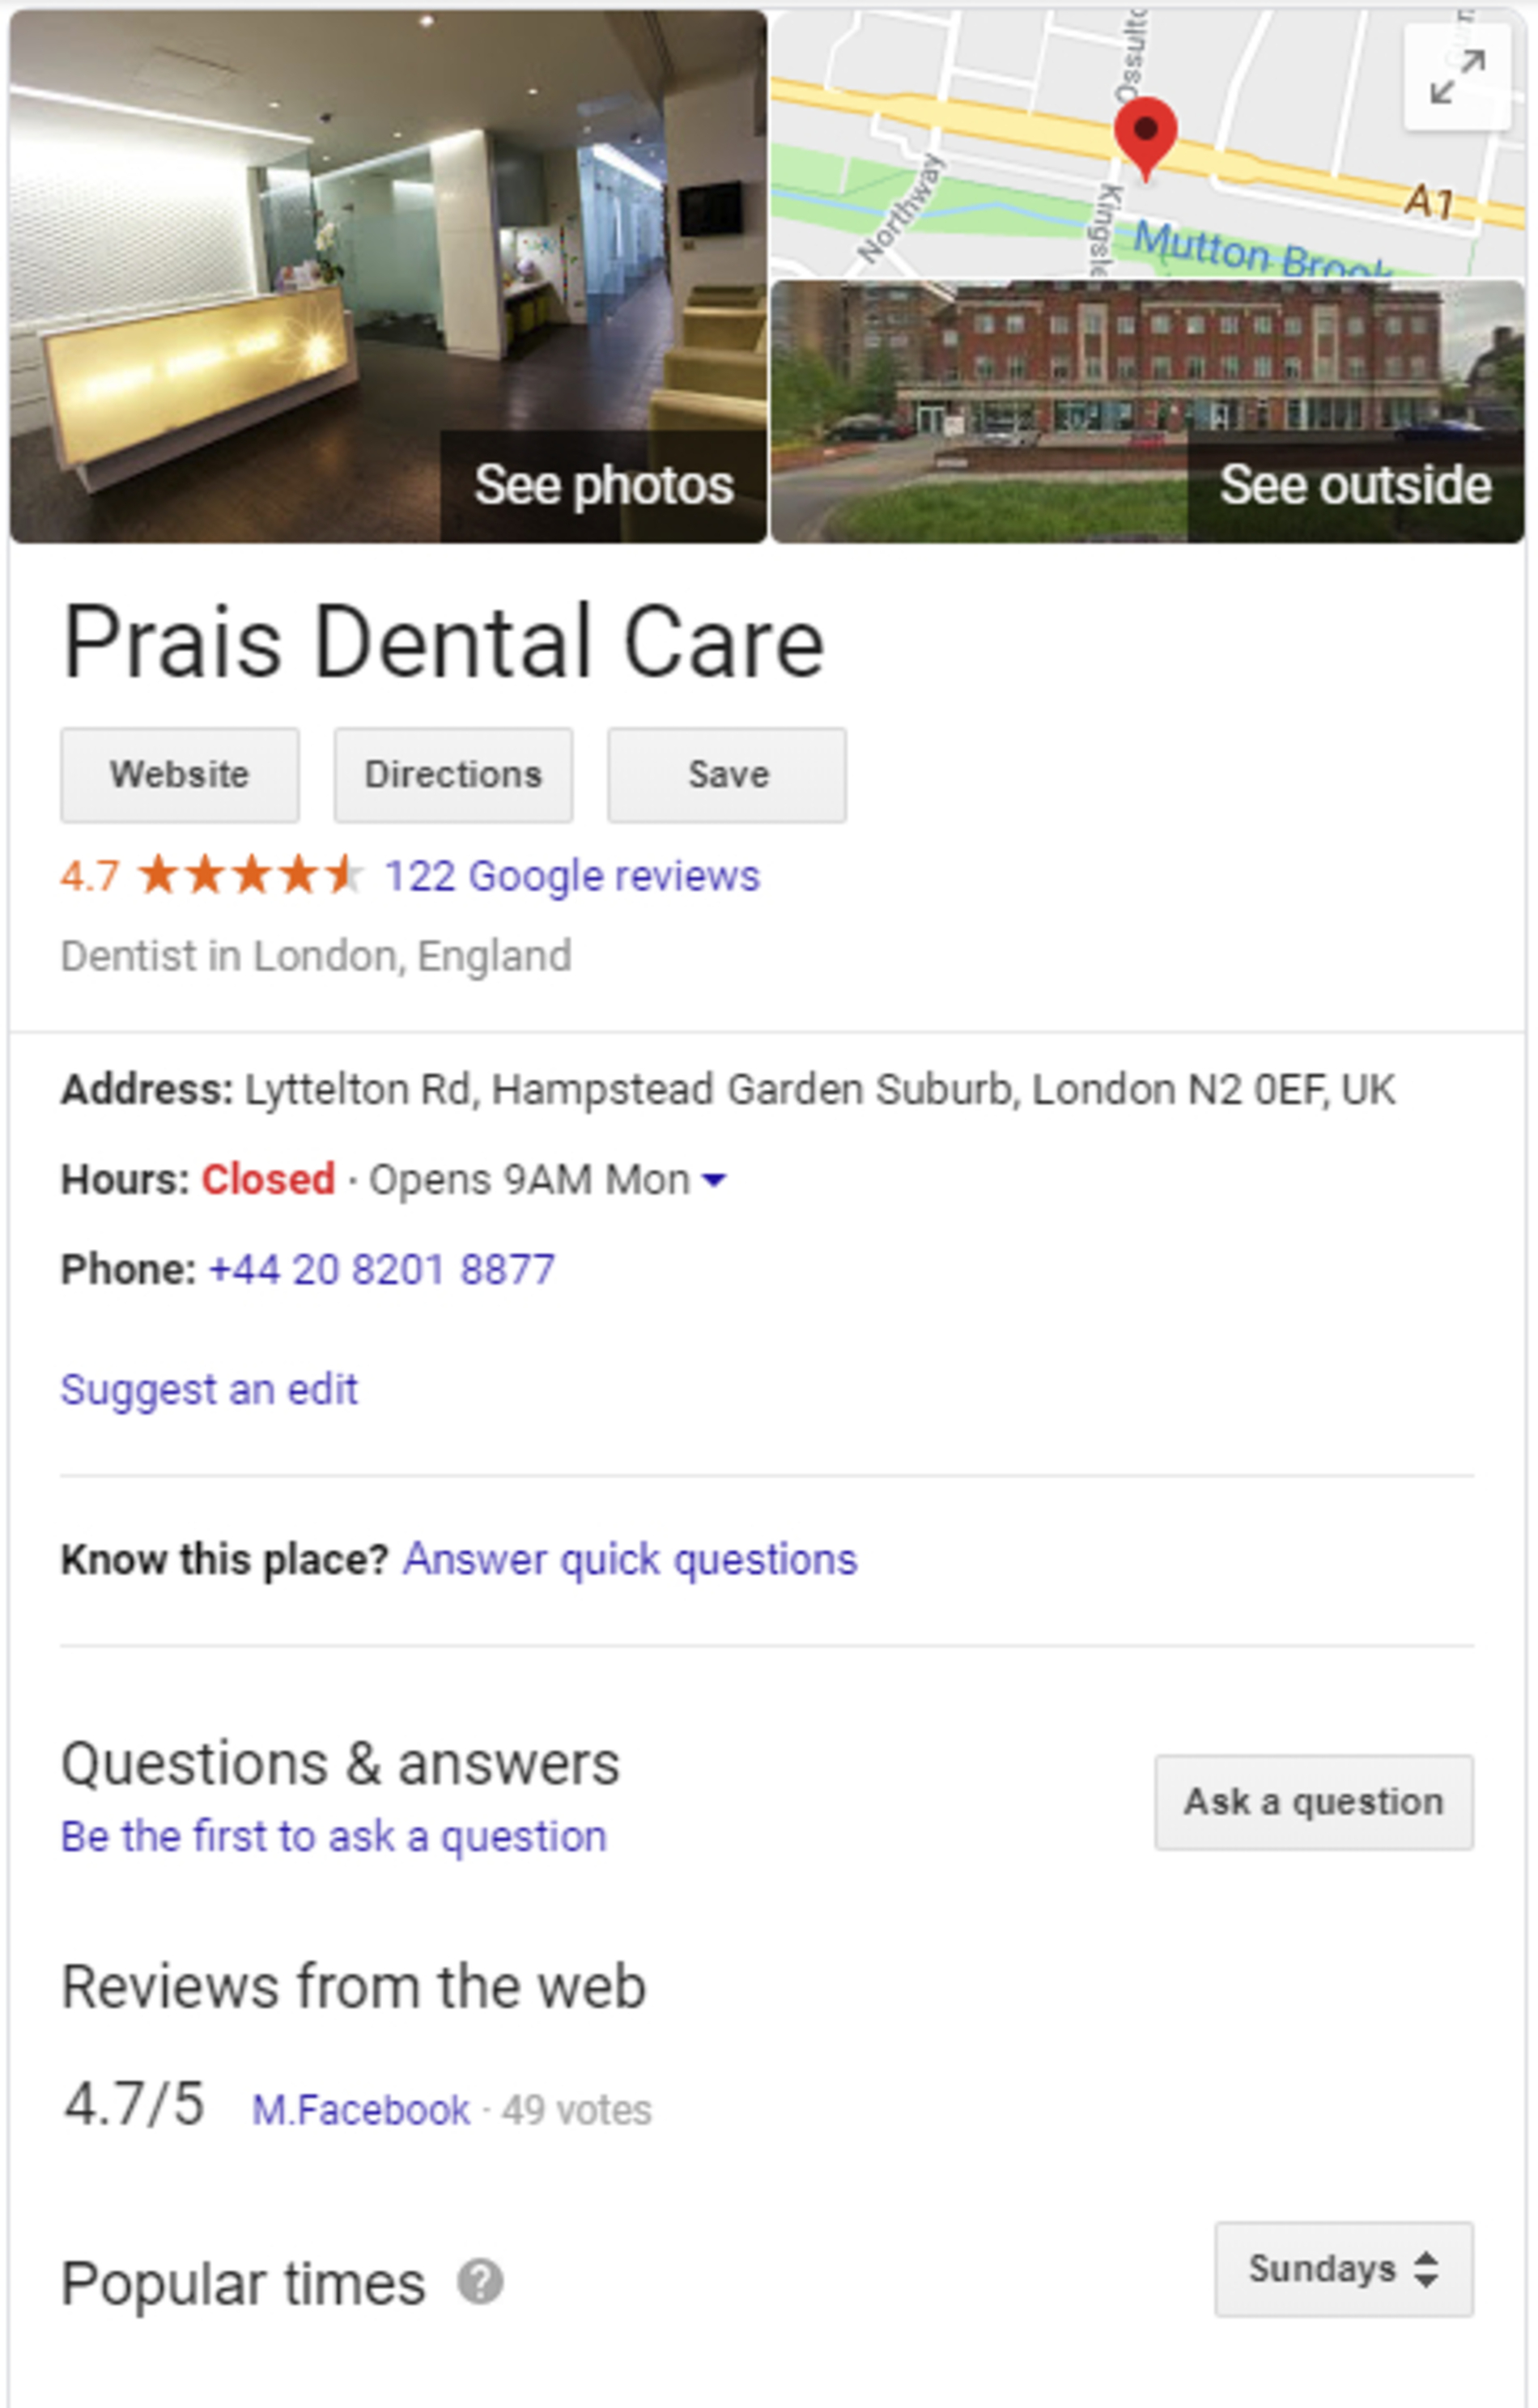 Google search results for Prais Dental care.